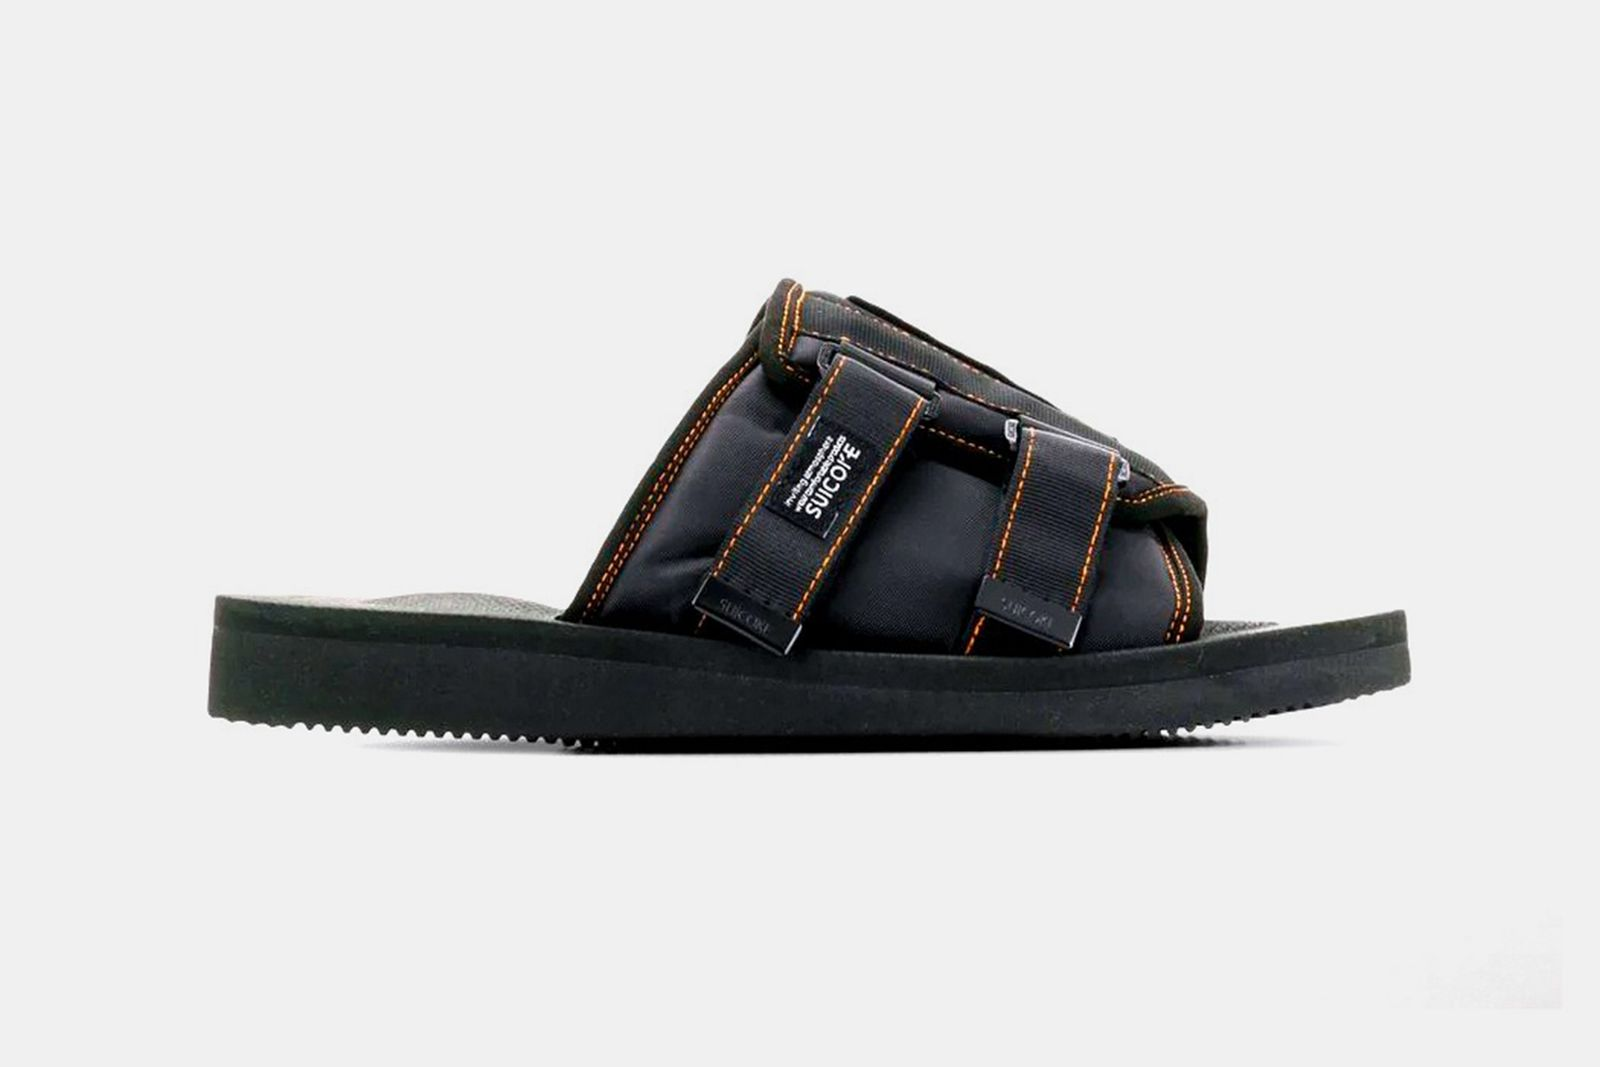 palm angels suicoke patch slider sandals release date price info Palm Angels x Suicoke